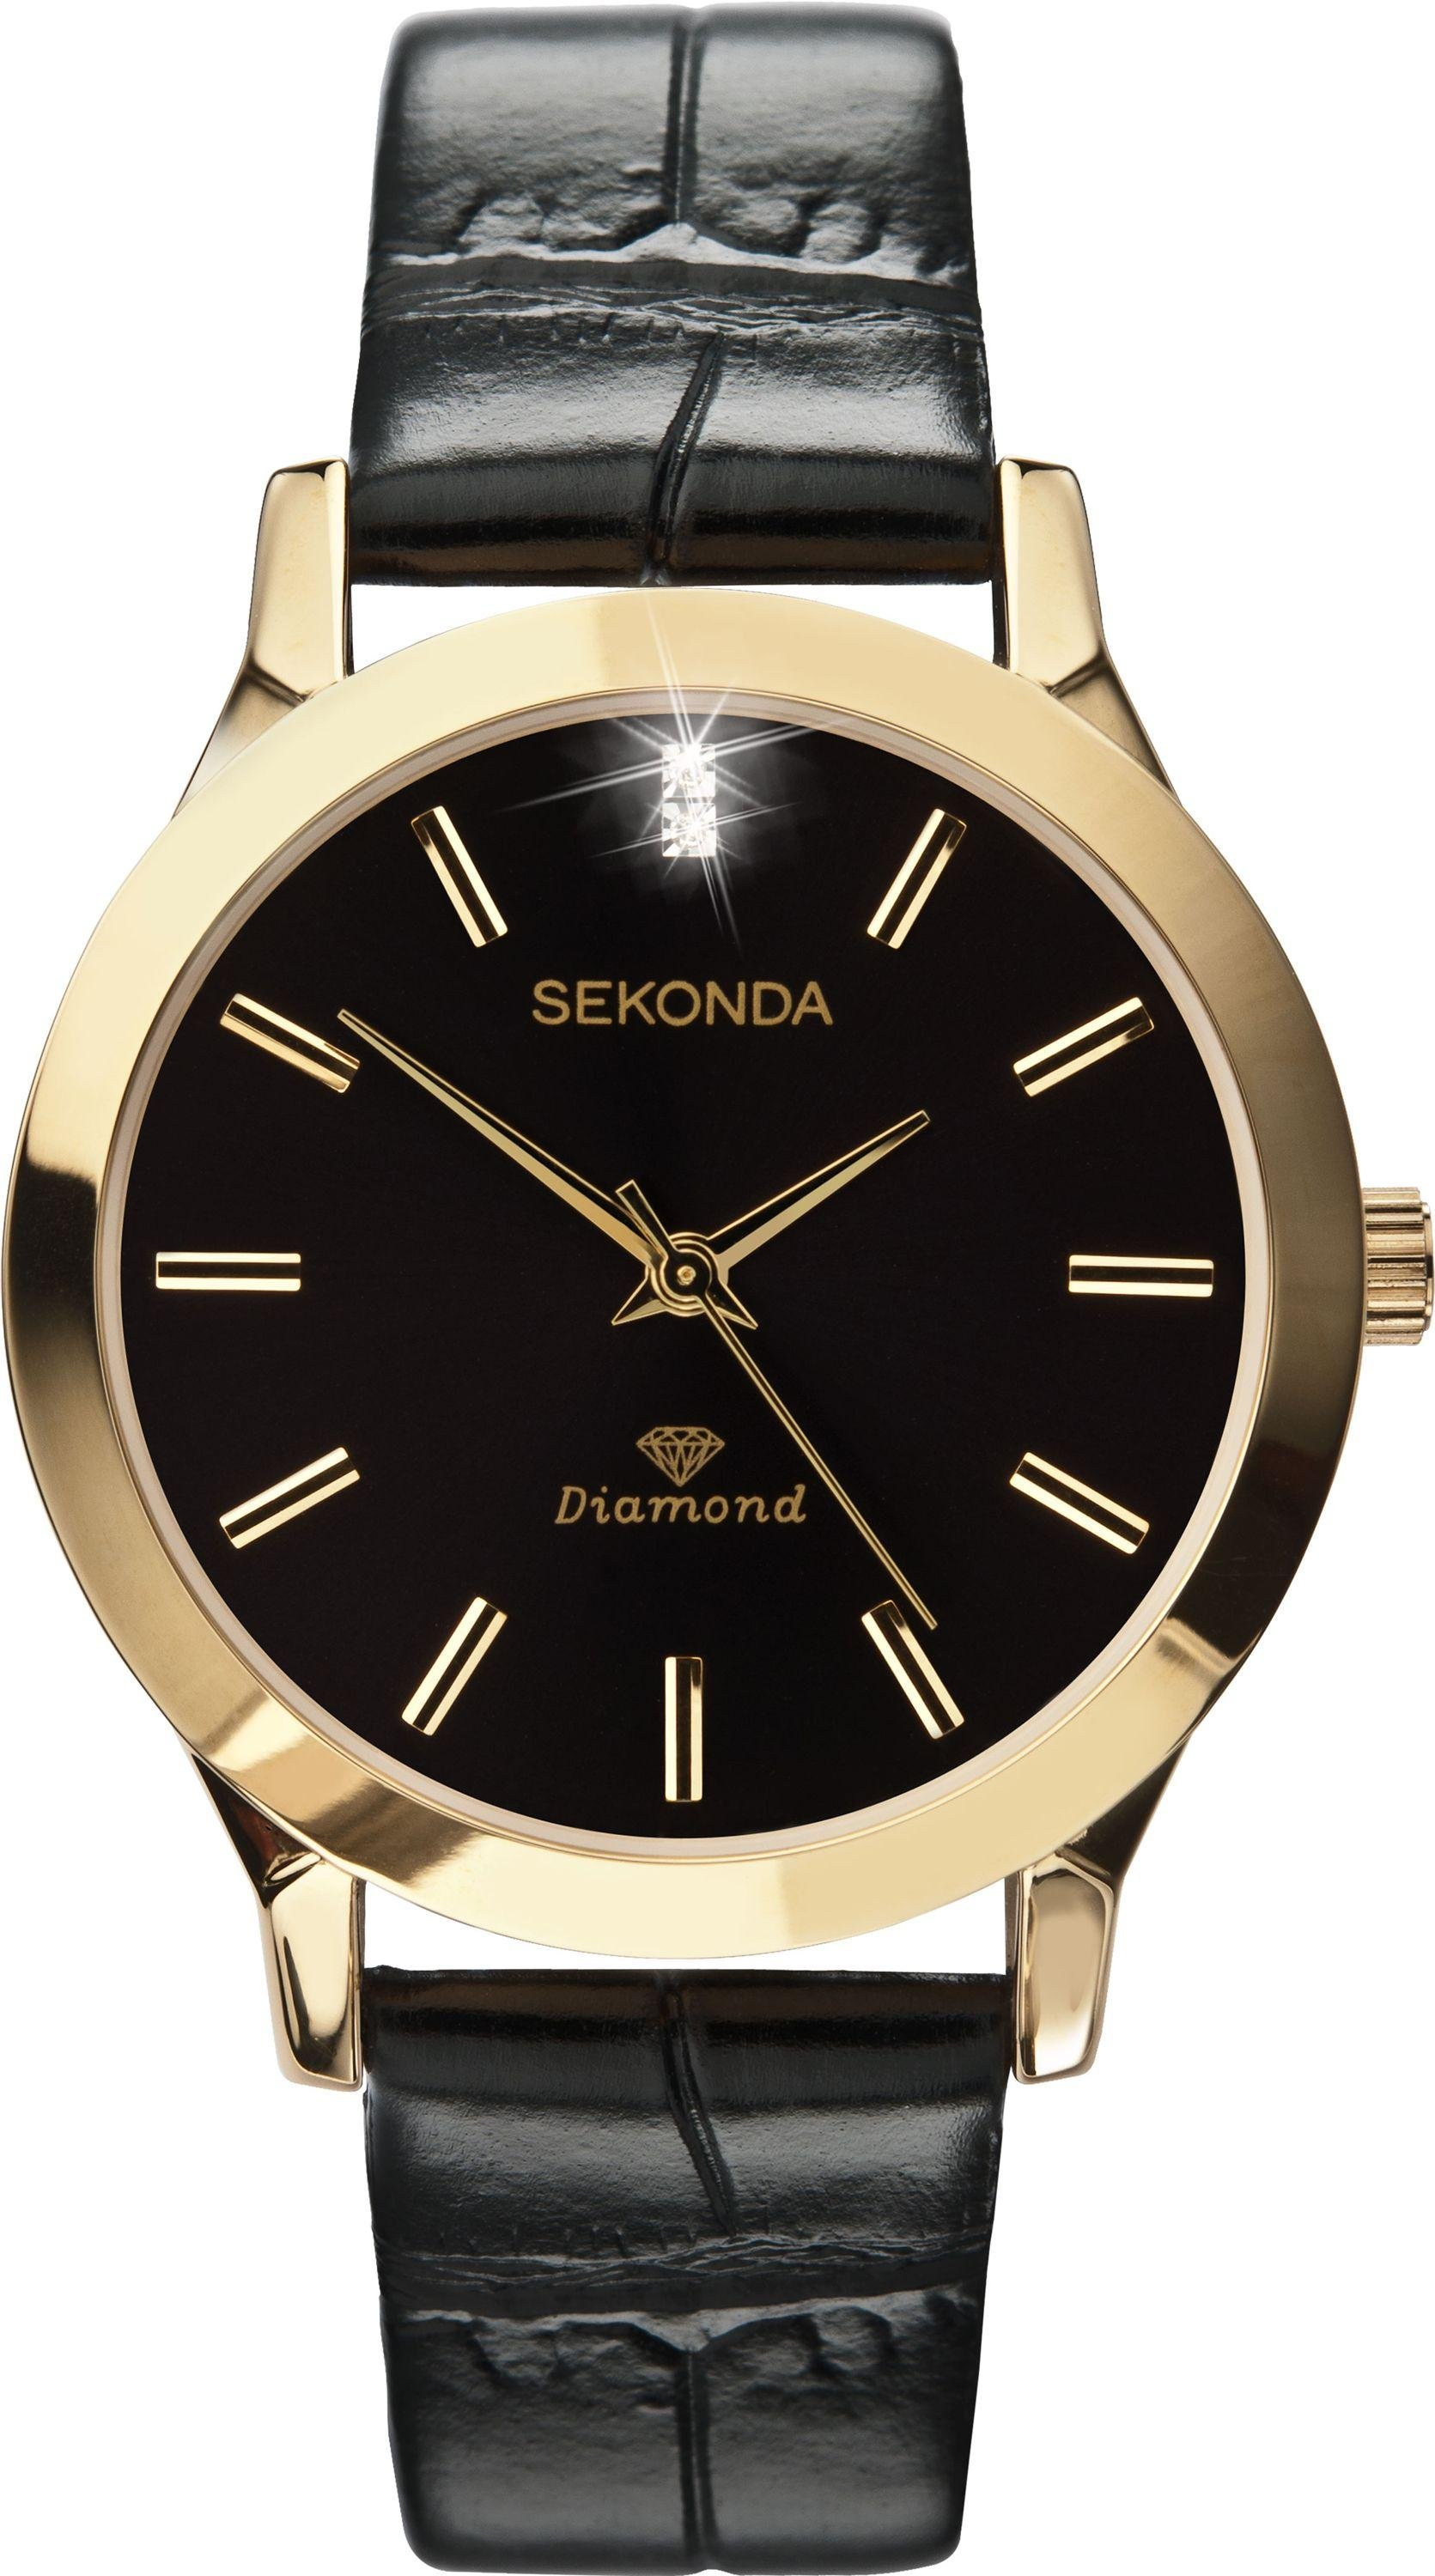 Buy Sekonda Men s Diamond Watch at Argos Your line Shop